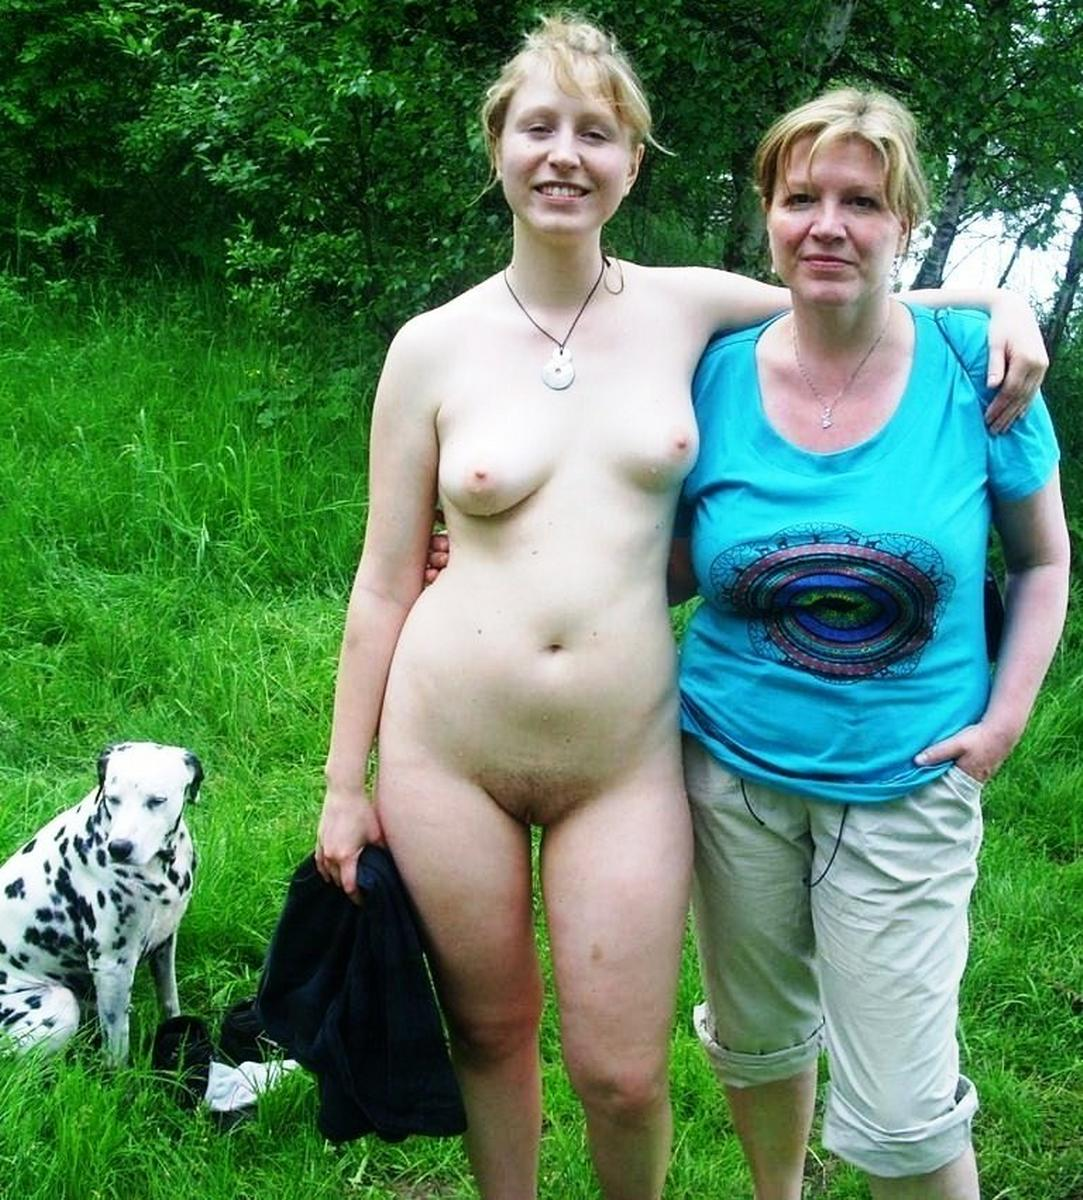 Mother and friend nude